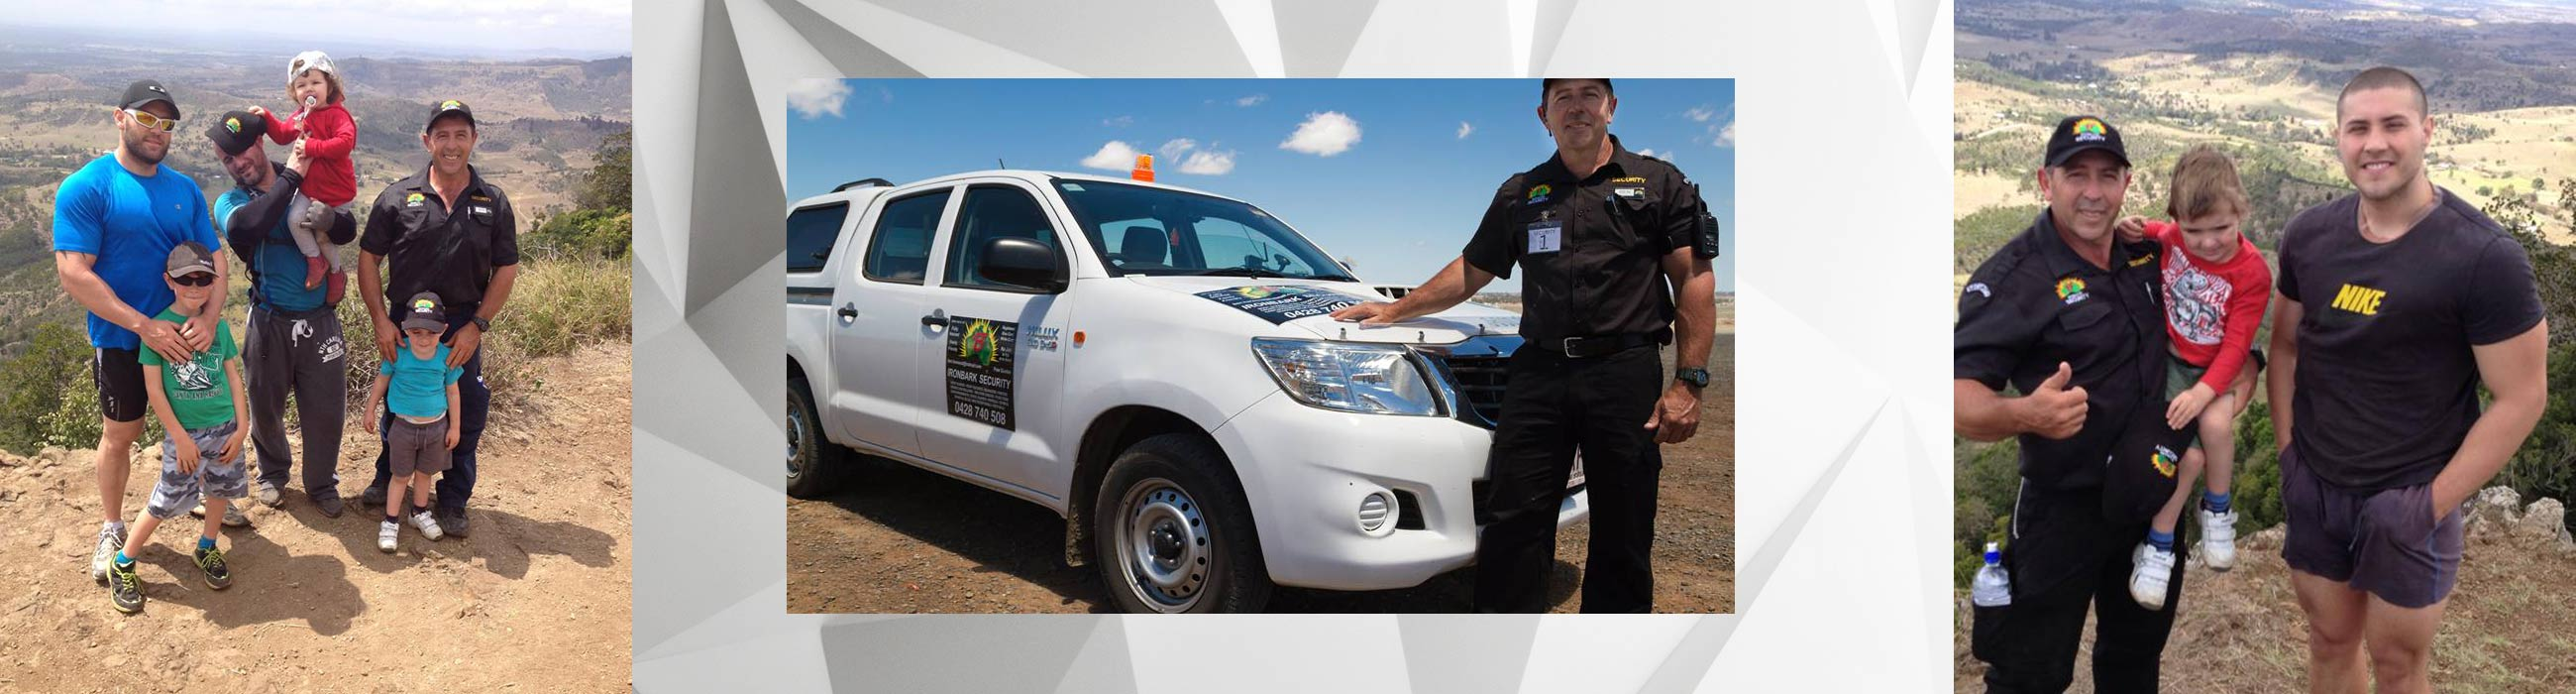 ironbark security service with business vehicle and customer